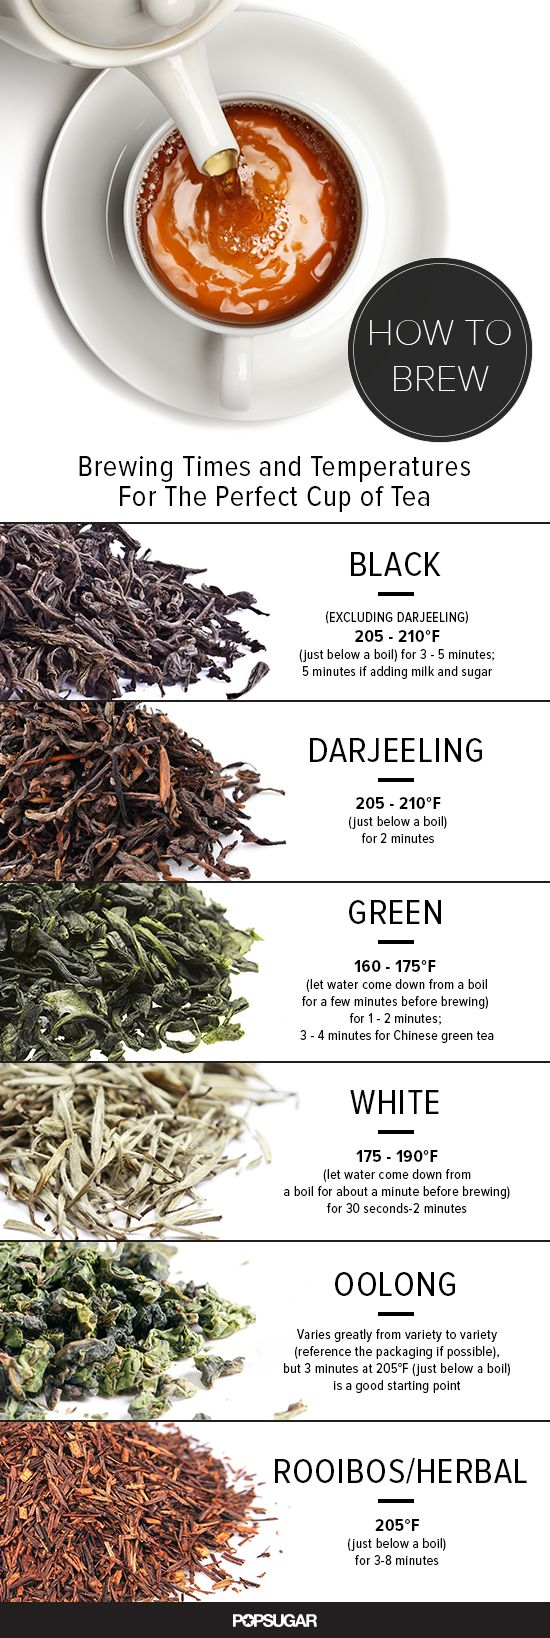 ∆ Tea...How Long to Steep Tea...Brewing a cup of tea seems like a no-brainer proposition on the outset, but as anyone who has suffered through a bitter, oversteeped cup can tell you, to do it well requires a pinch of know-how...